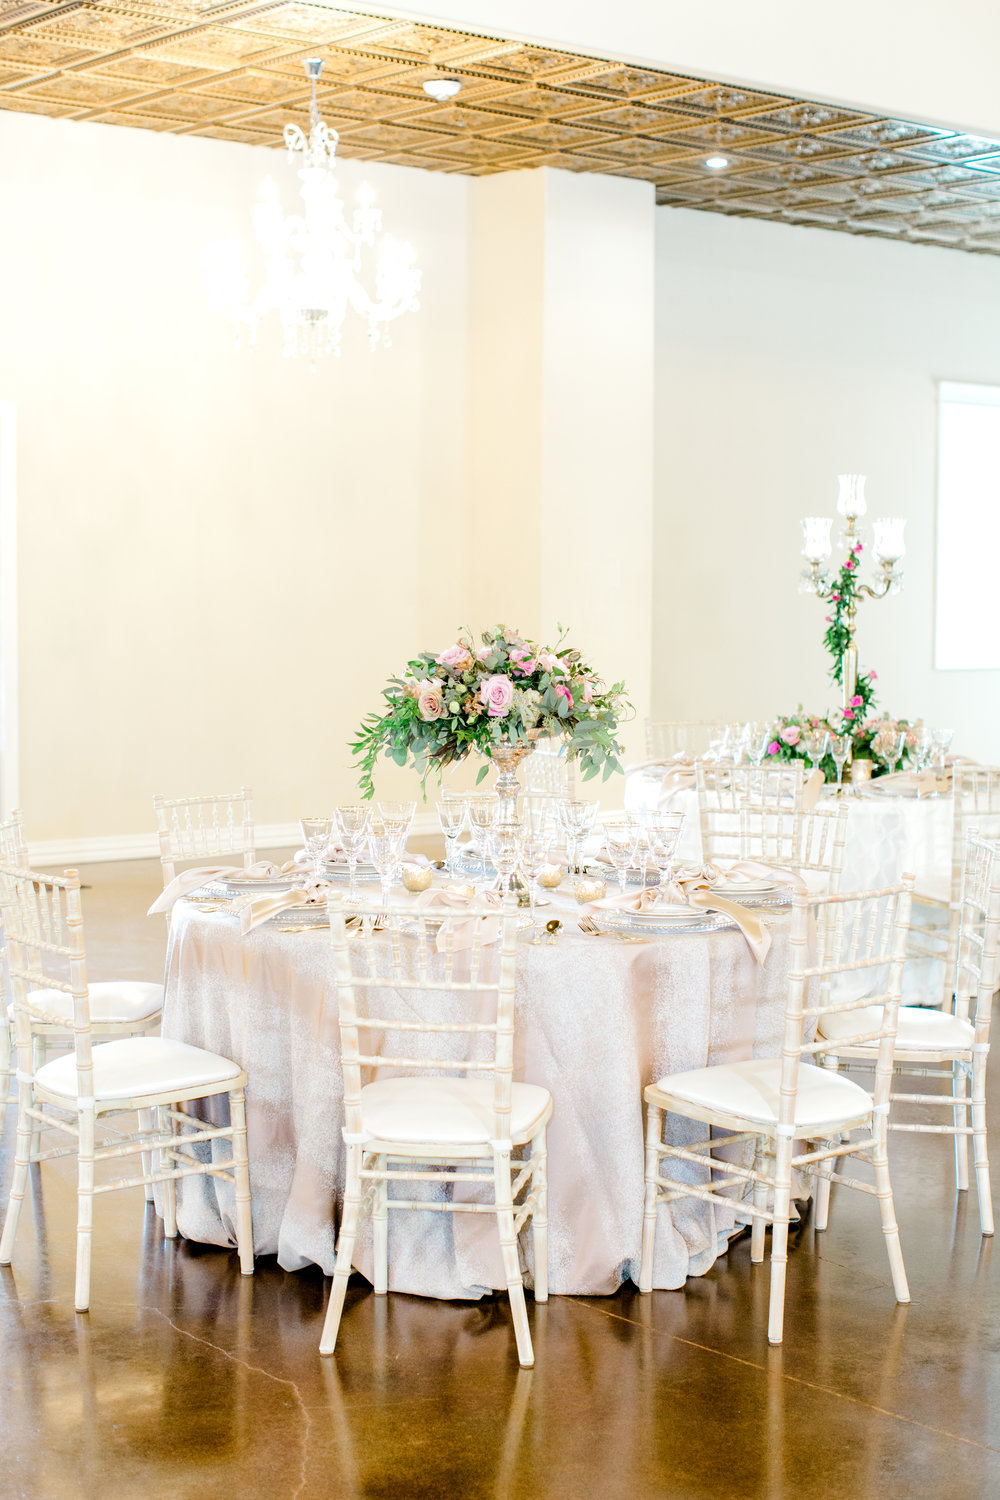 Mauve and White wedding at Southern Lace Estates | Candelabra wedding decor